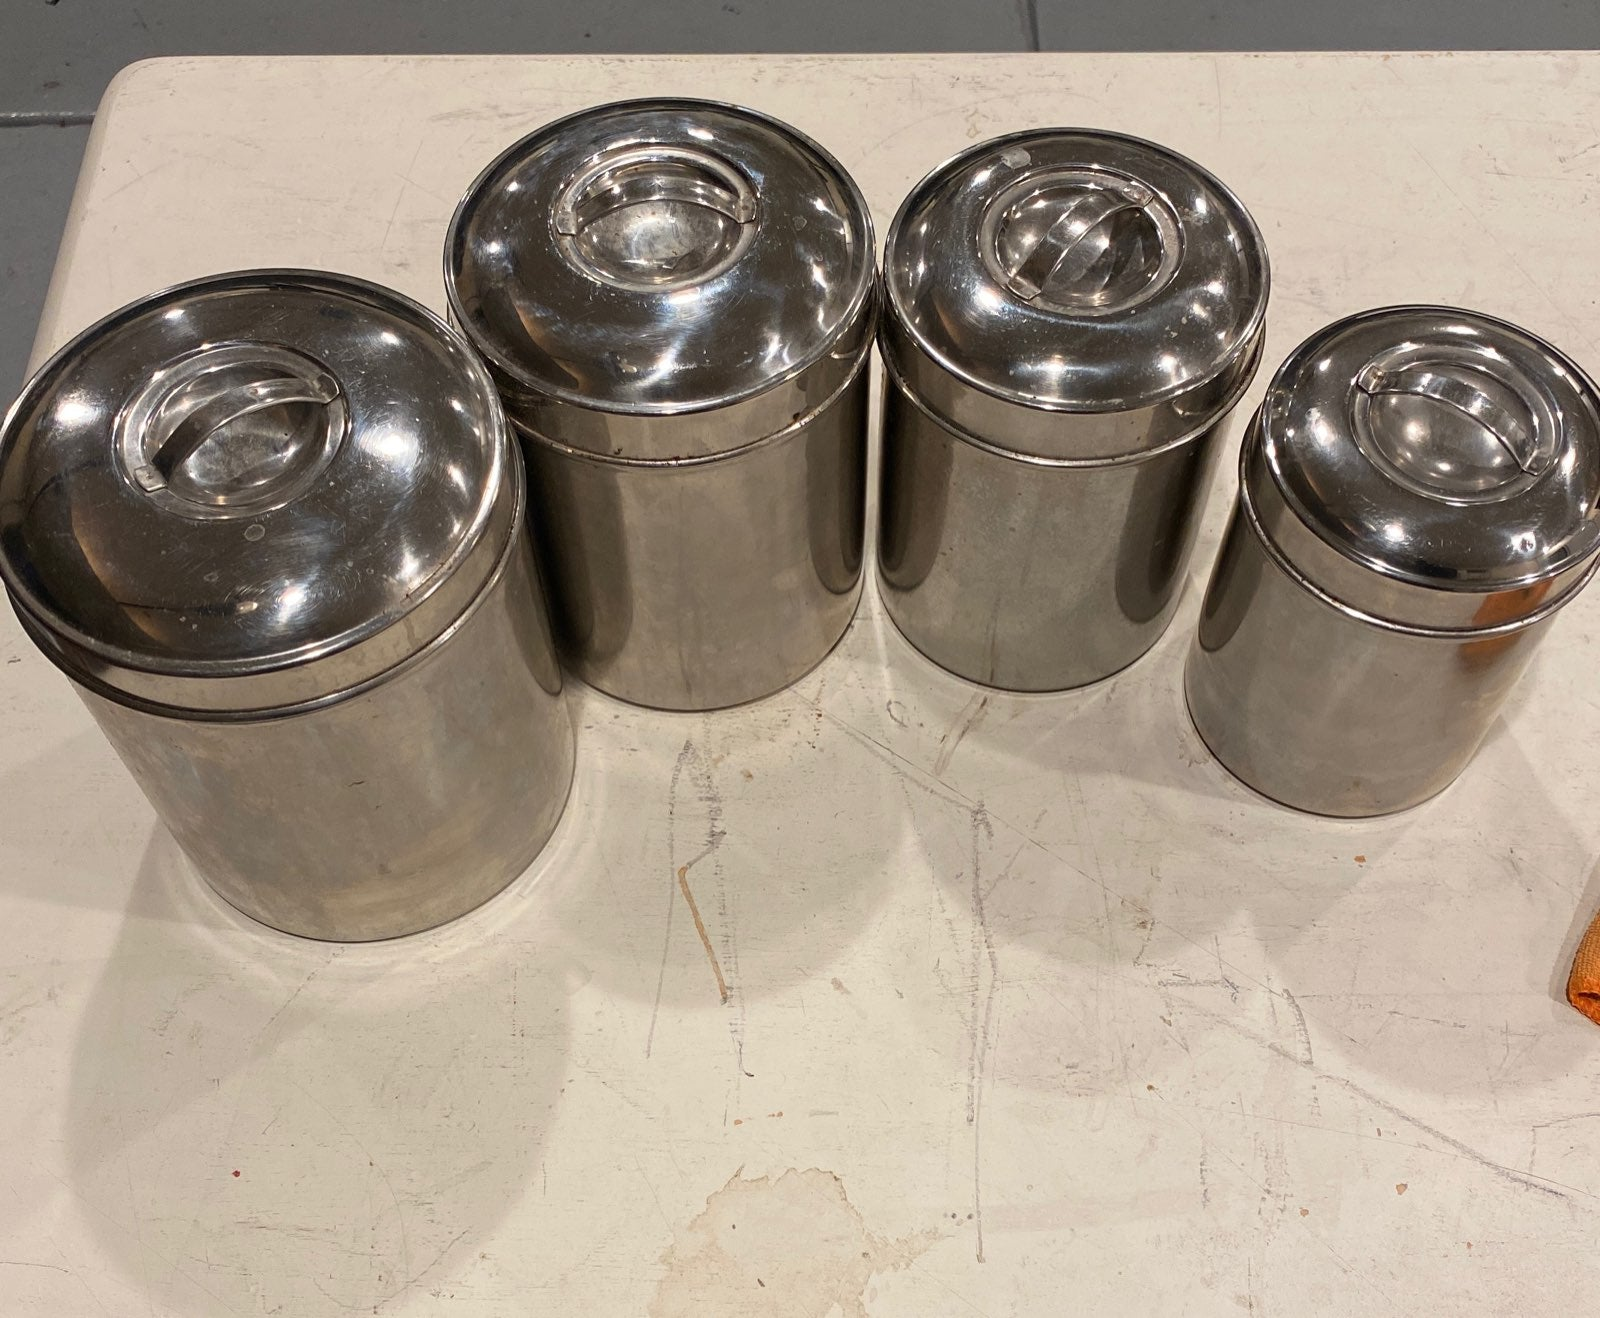 4 piece stainless steal canister set